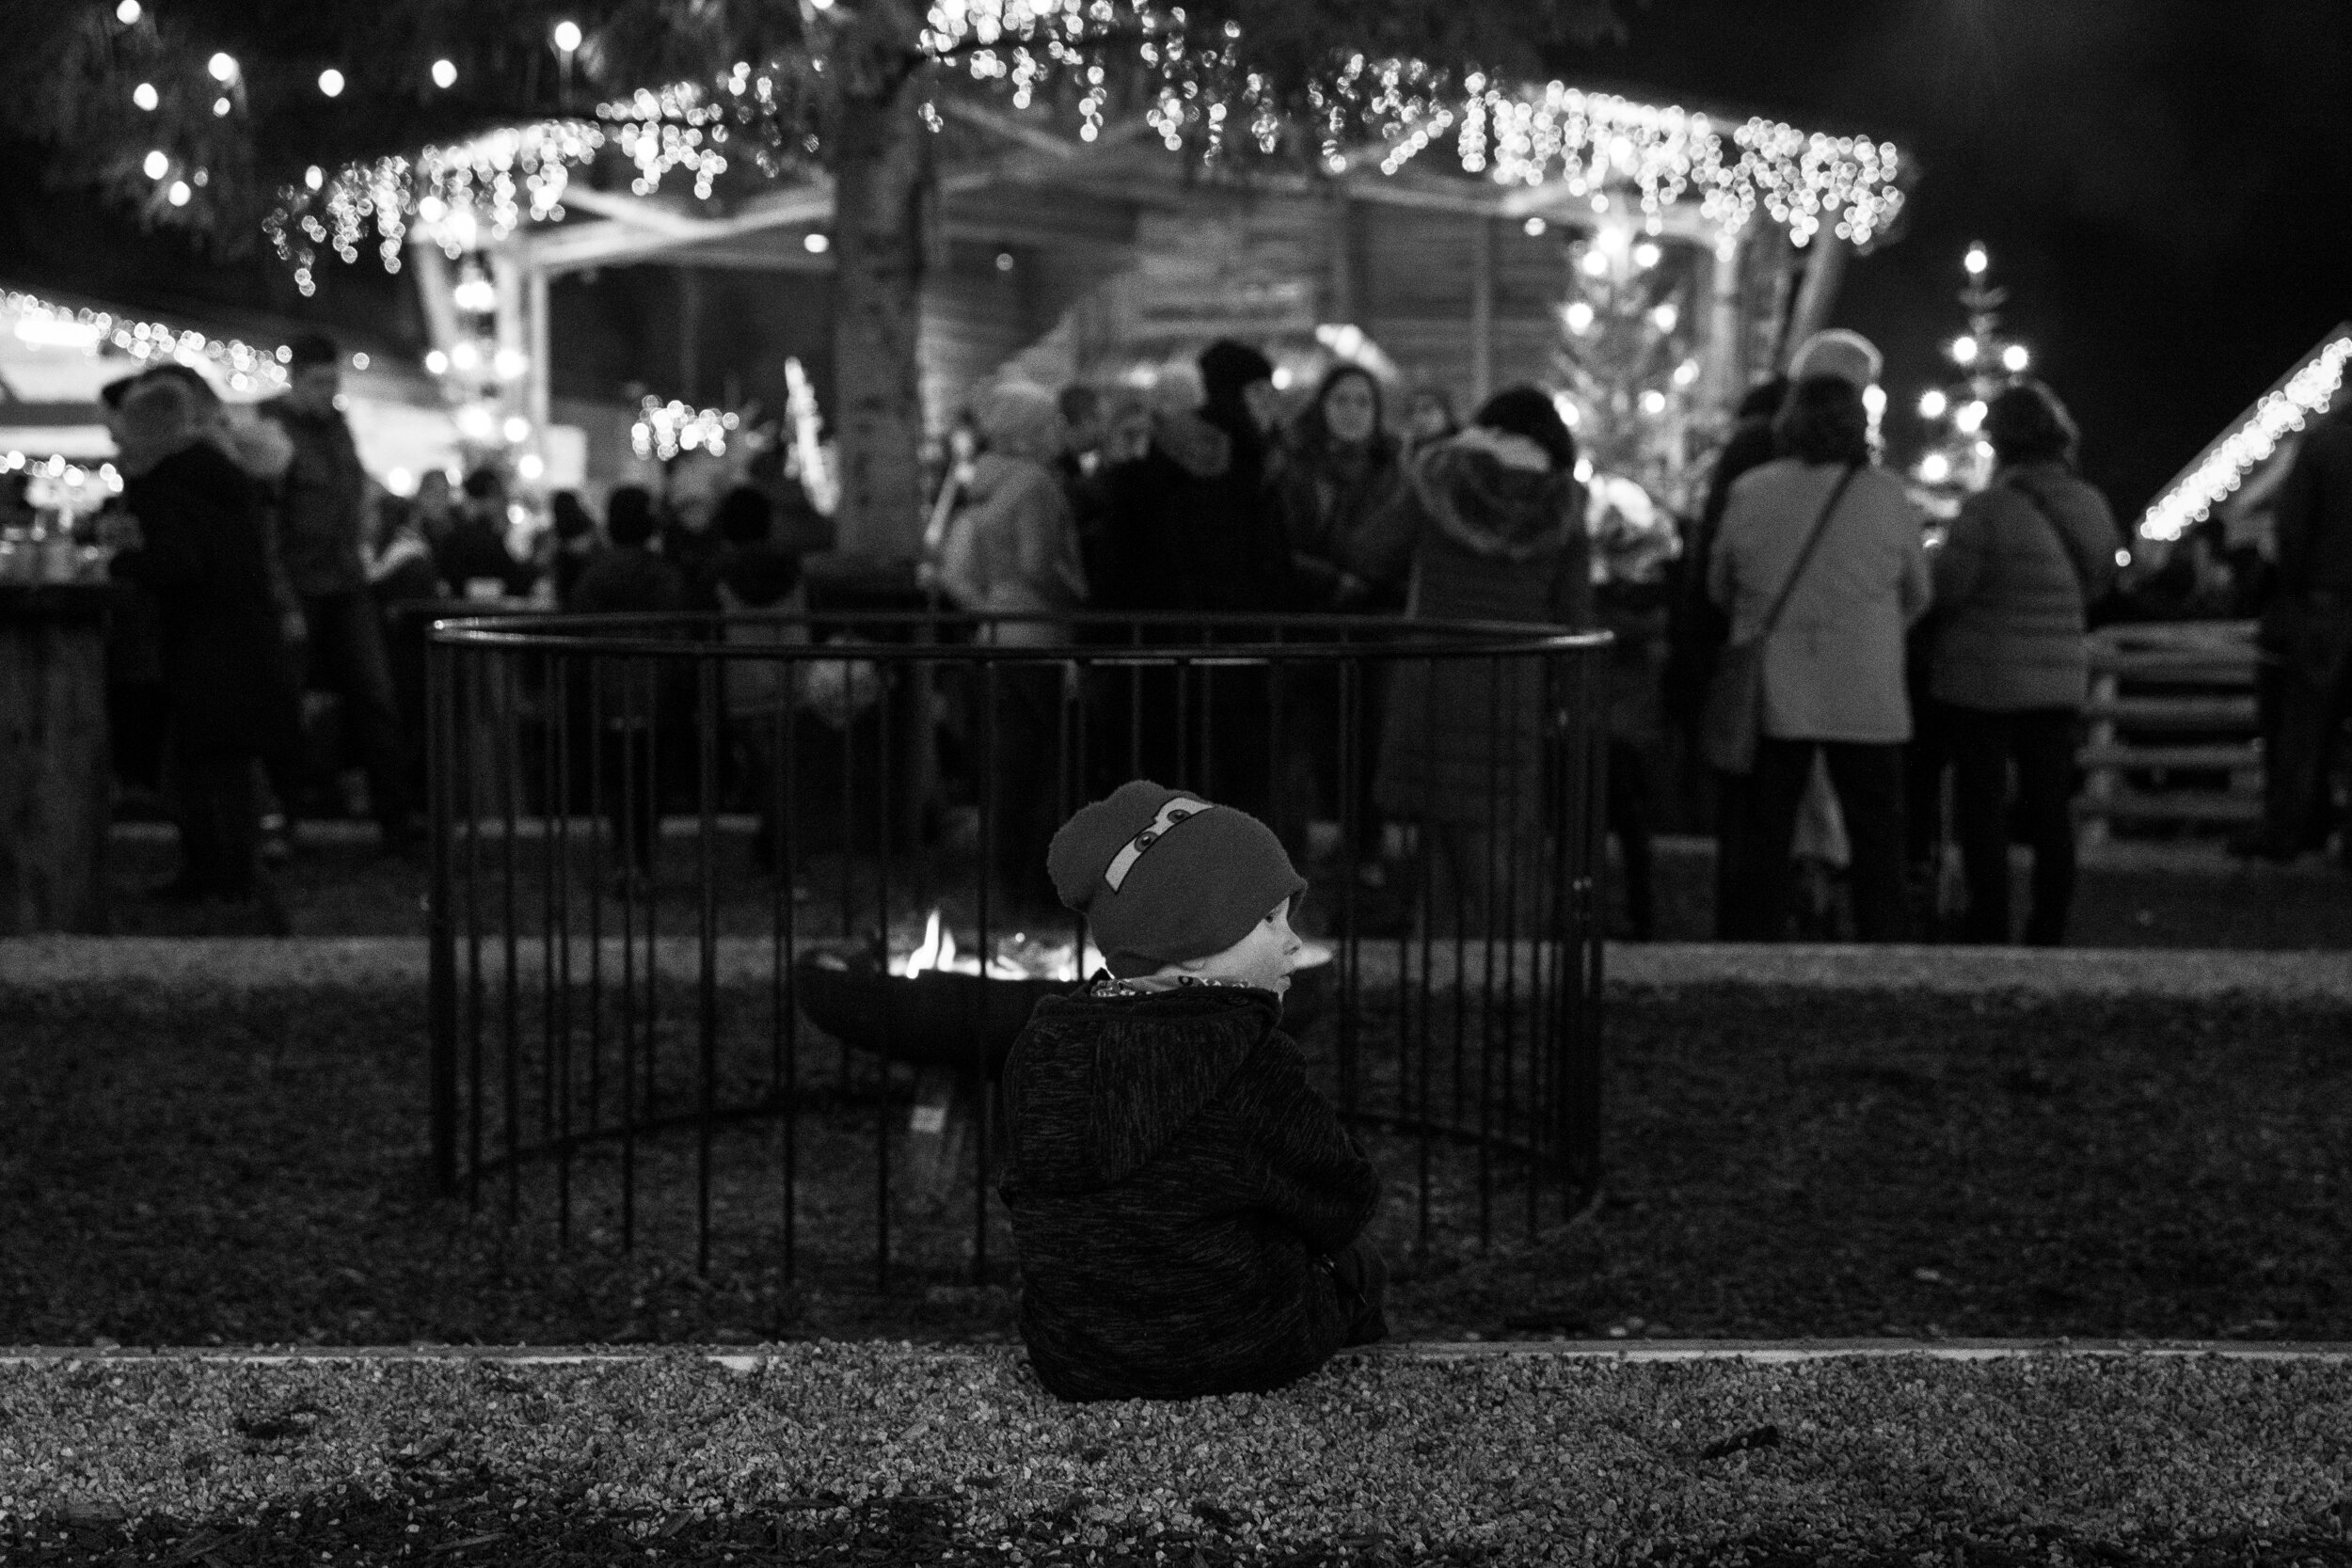 Warming by the fire at the Christmas Market